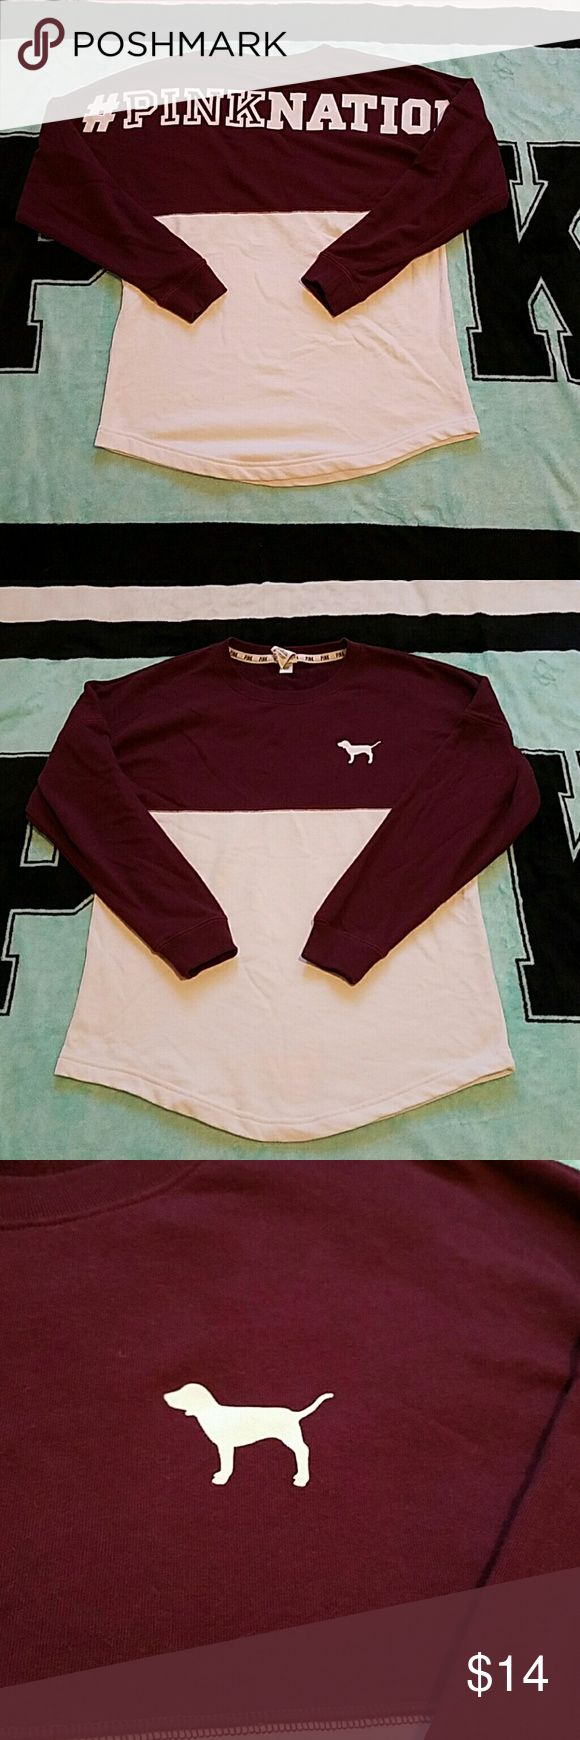 😊 Pink Nation sweatshirt Pink Nation on back, dog on front left, color block with burgandy and white, curved at bottom, worn once, looks like a speck of discoloration shown in last pic, not really noticeable, other than that it's great condition PINK Victoria's Secret Tops Sweatshirts & Hoodies